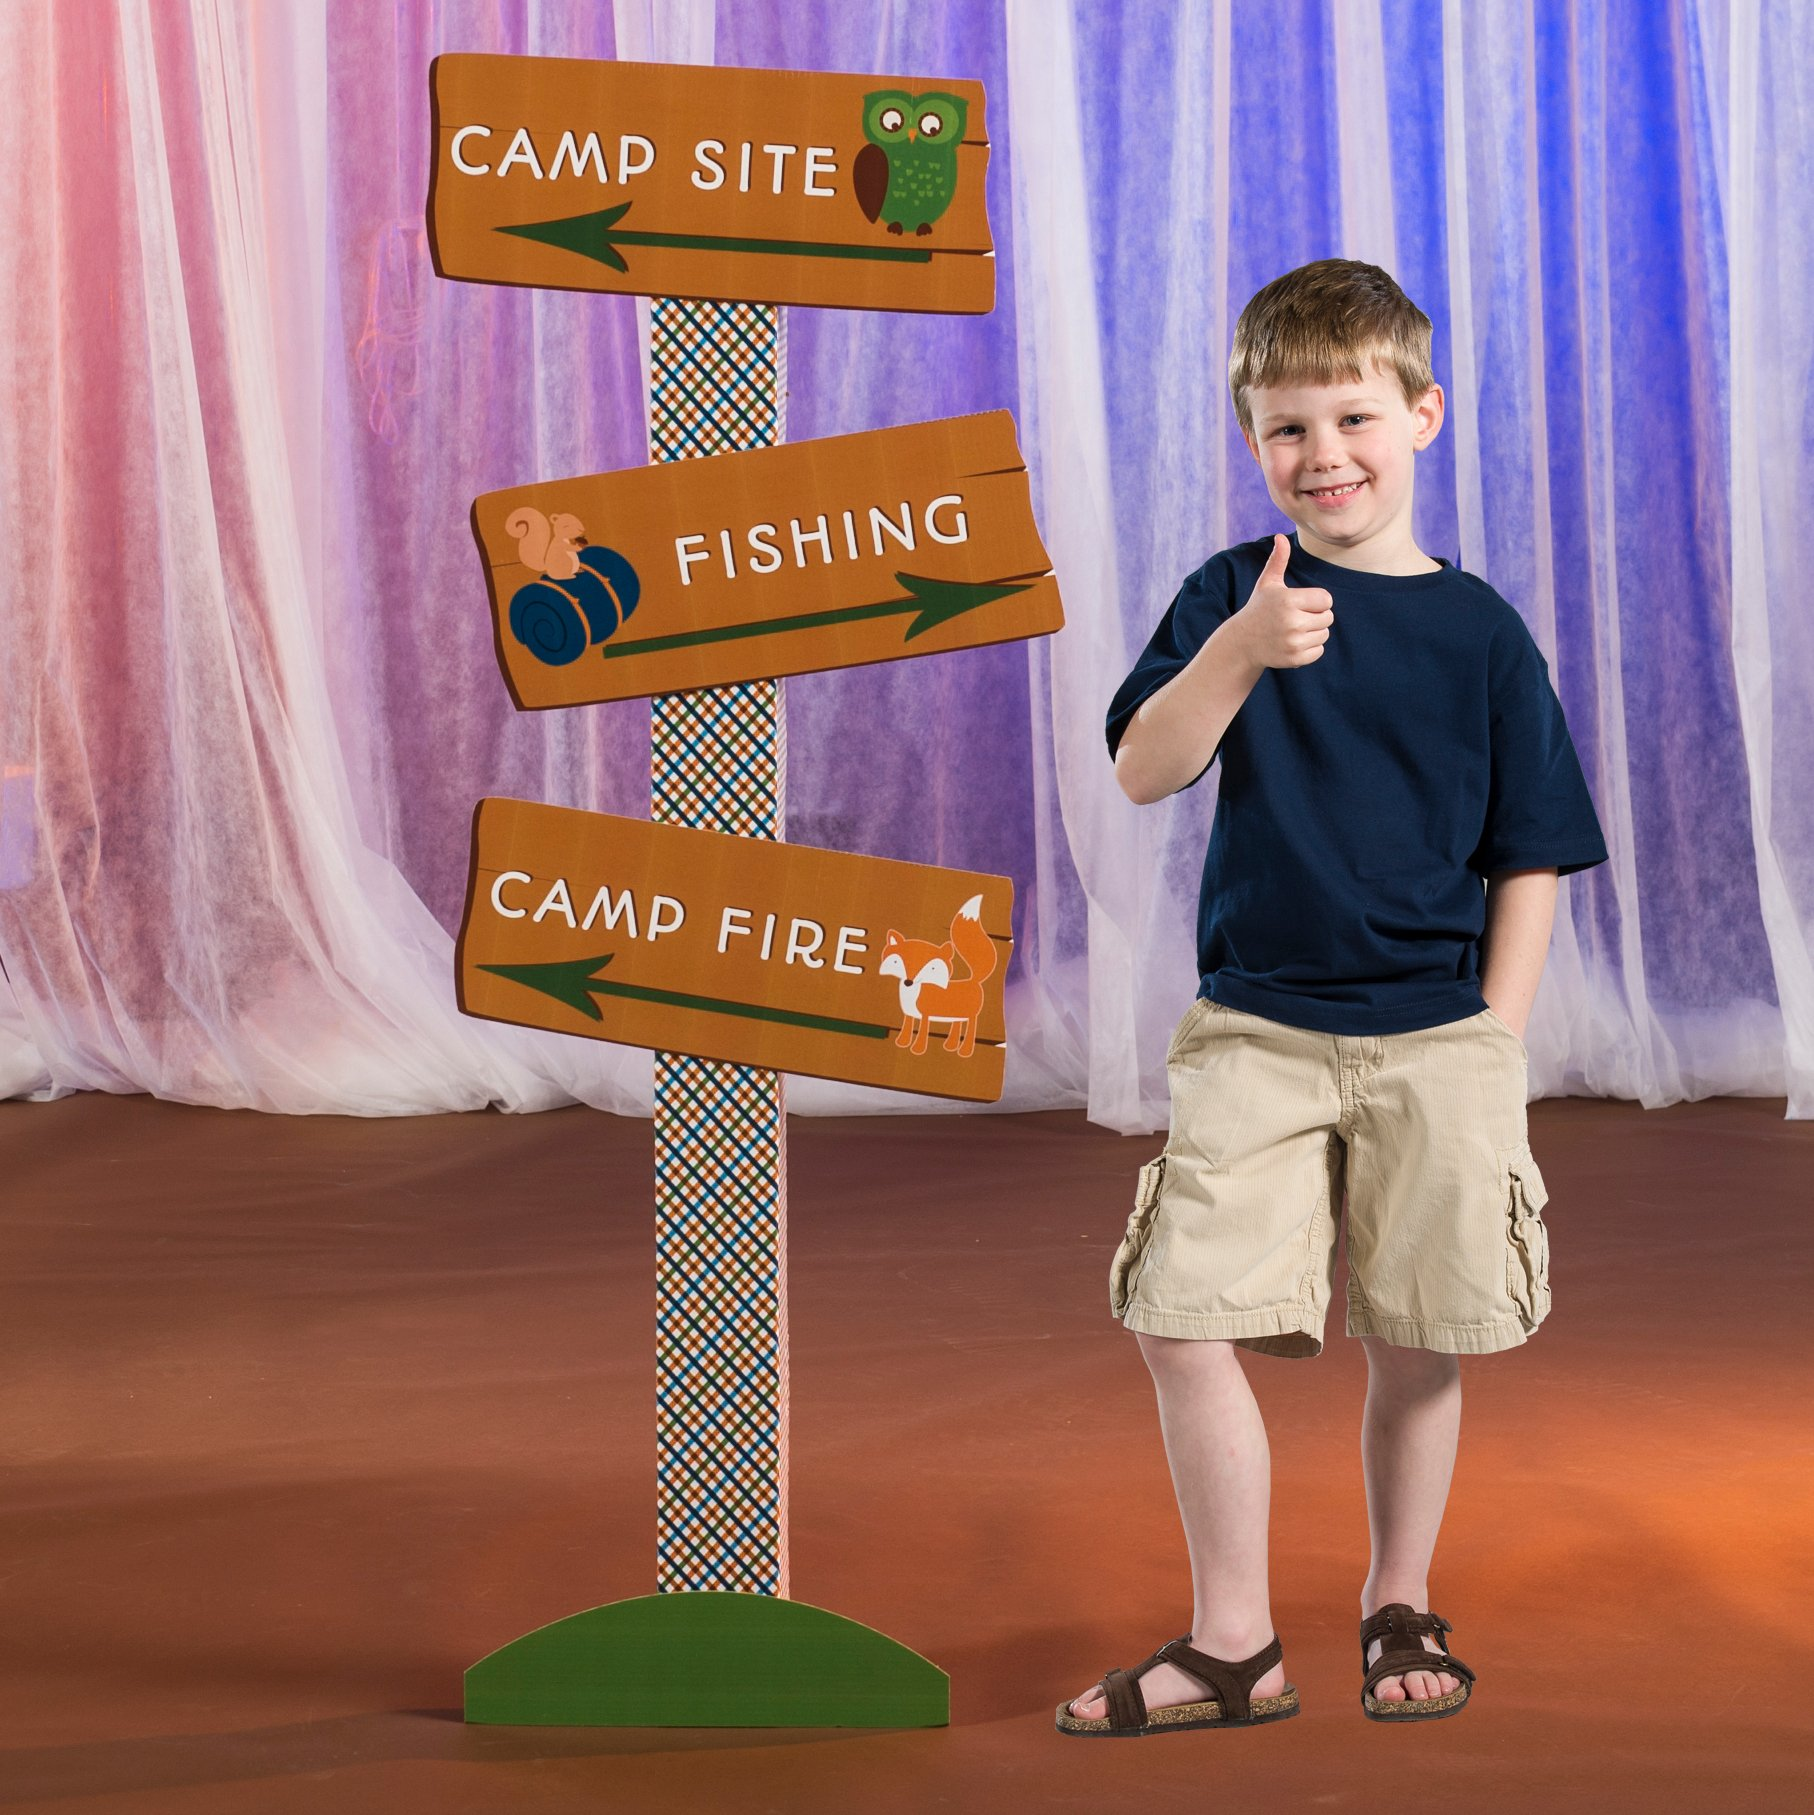 5 ft. 8 in. Happy Campers Camping Directional Sign Standup Background Backdrop Party Decoration Decor Scene Setter Cardboard Cutout